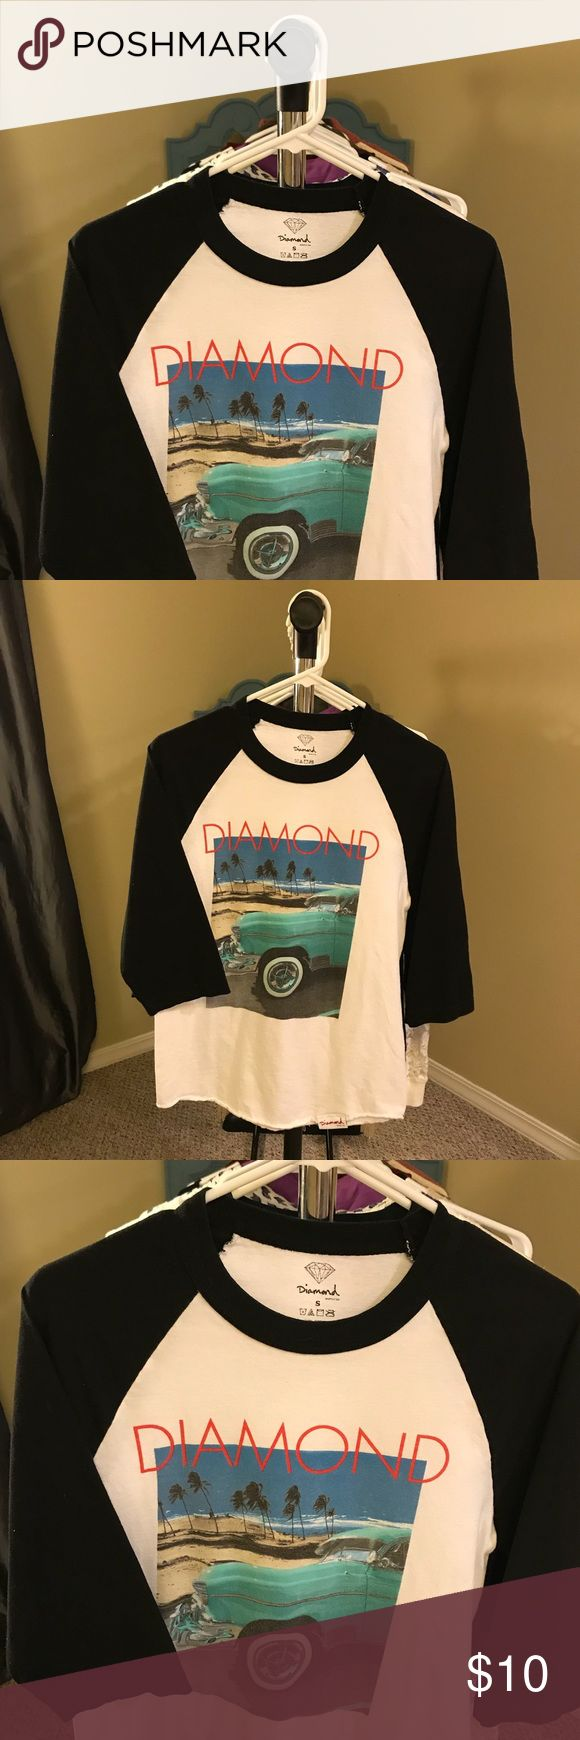 💎💎 Diamond Supply Co. Sale 💎💎 3/4 sleeve Diamond Supply Company shirt with blue truck and palm trees 🌴🌊🚙 size small baseball style sleeves! So cute! Excellent used condition!! Diamond Supply Co. Tops Tees - Long Sleeve